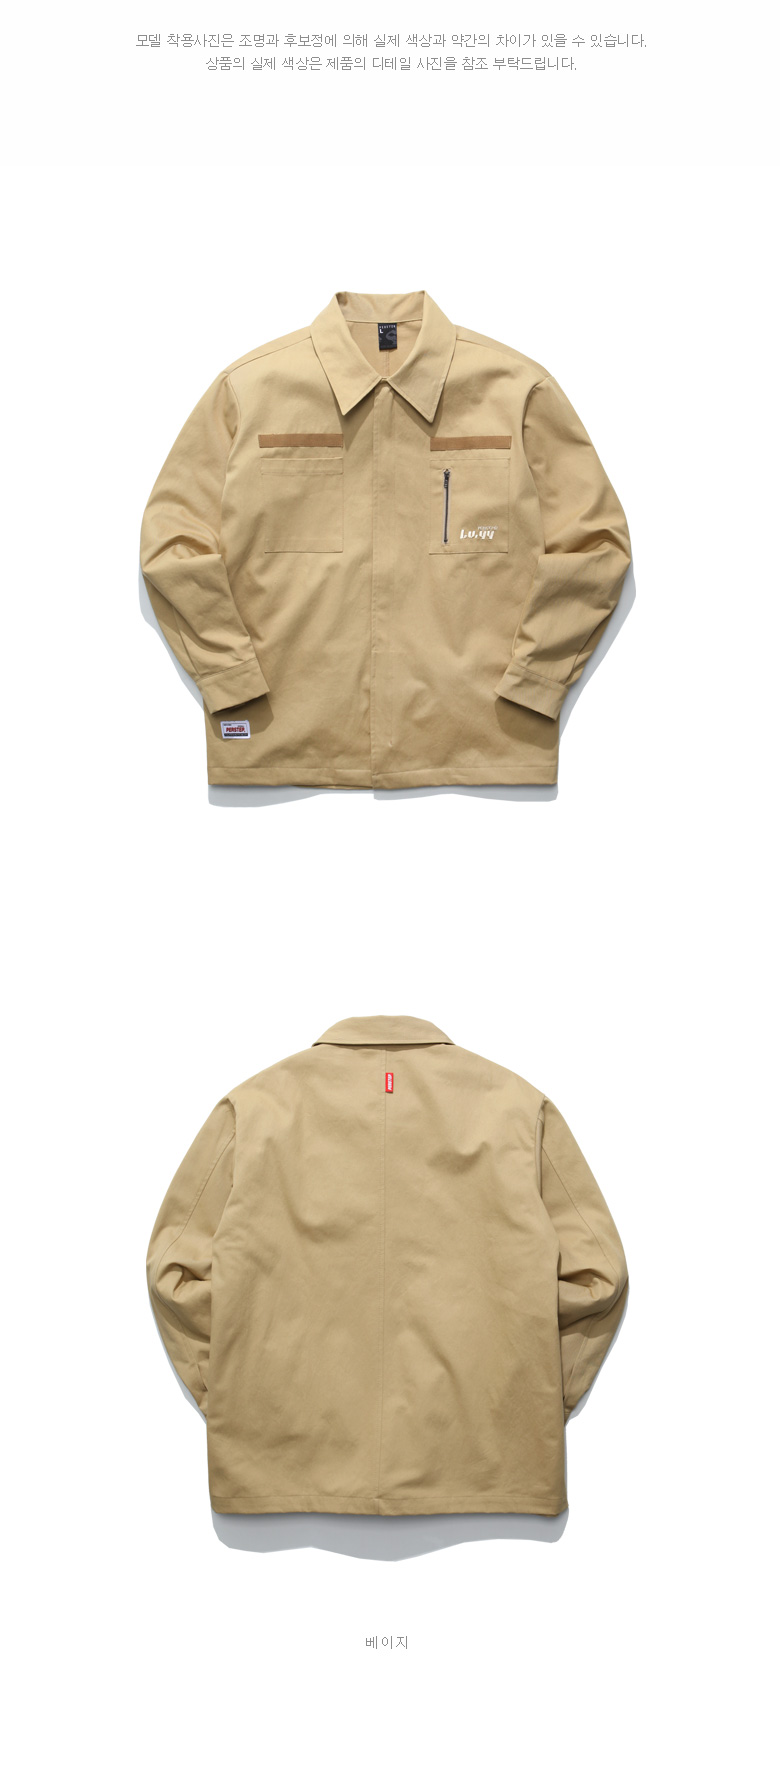 20190131_ps_level_shirt_beige_uk_01.jpg